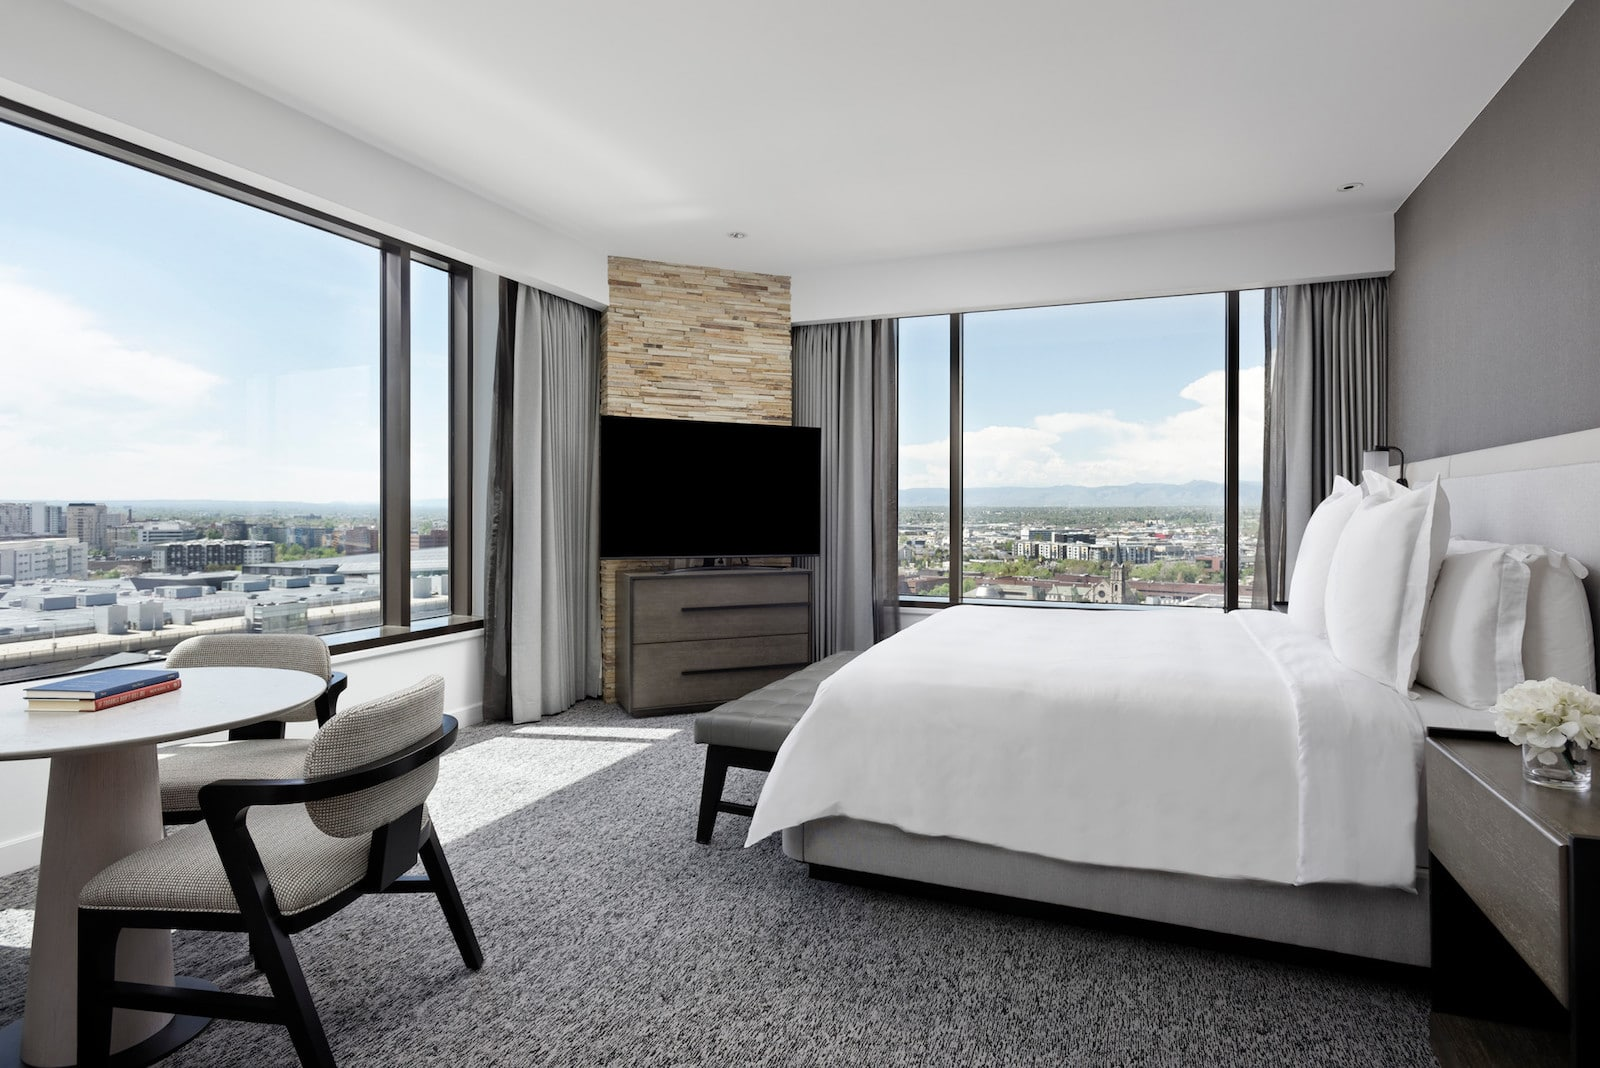 Image of a room in the Four Seasons Hotel Denver in Colorado